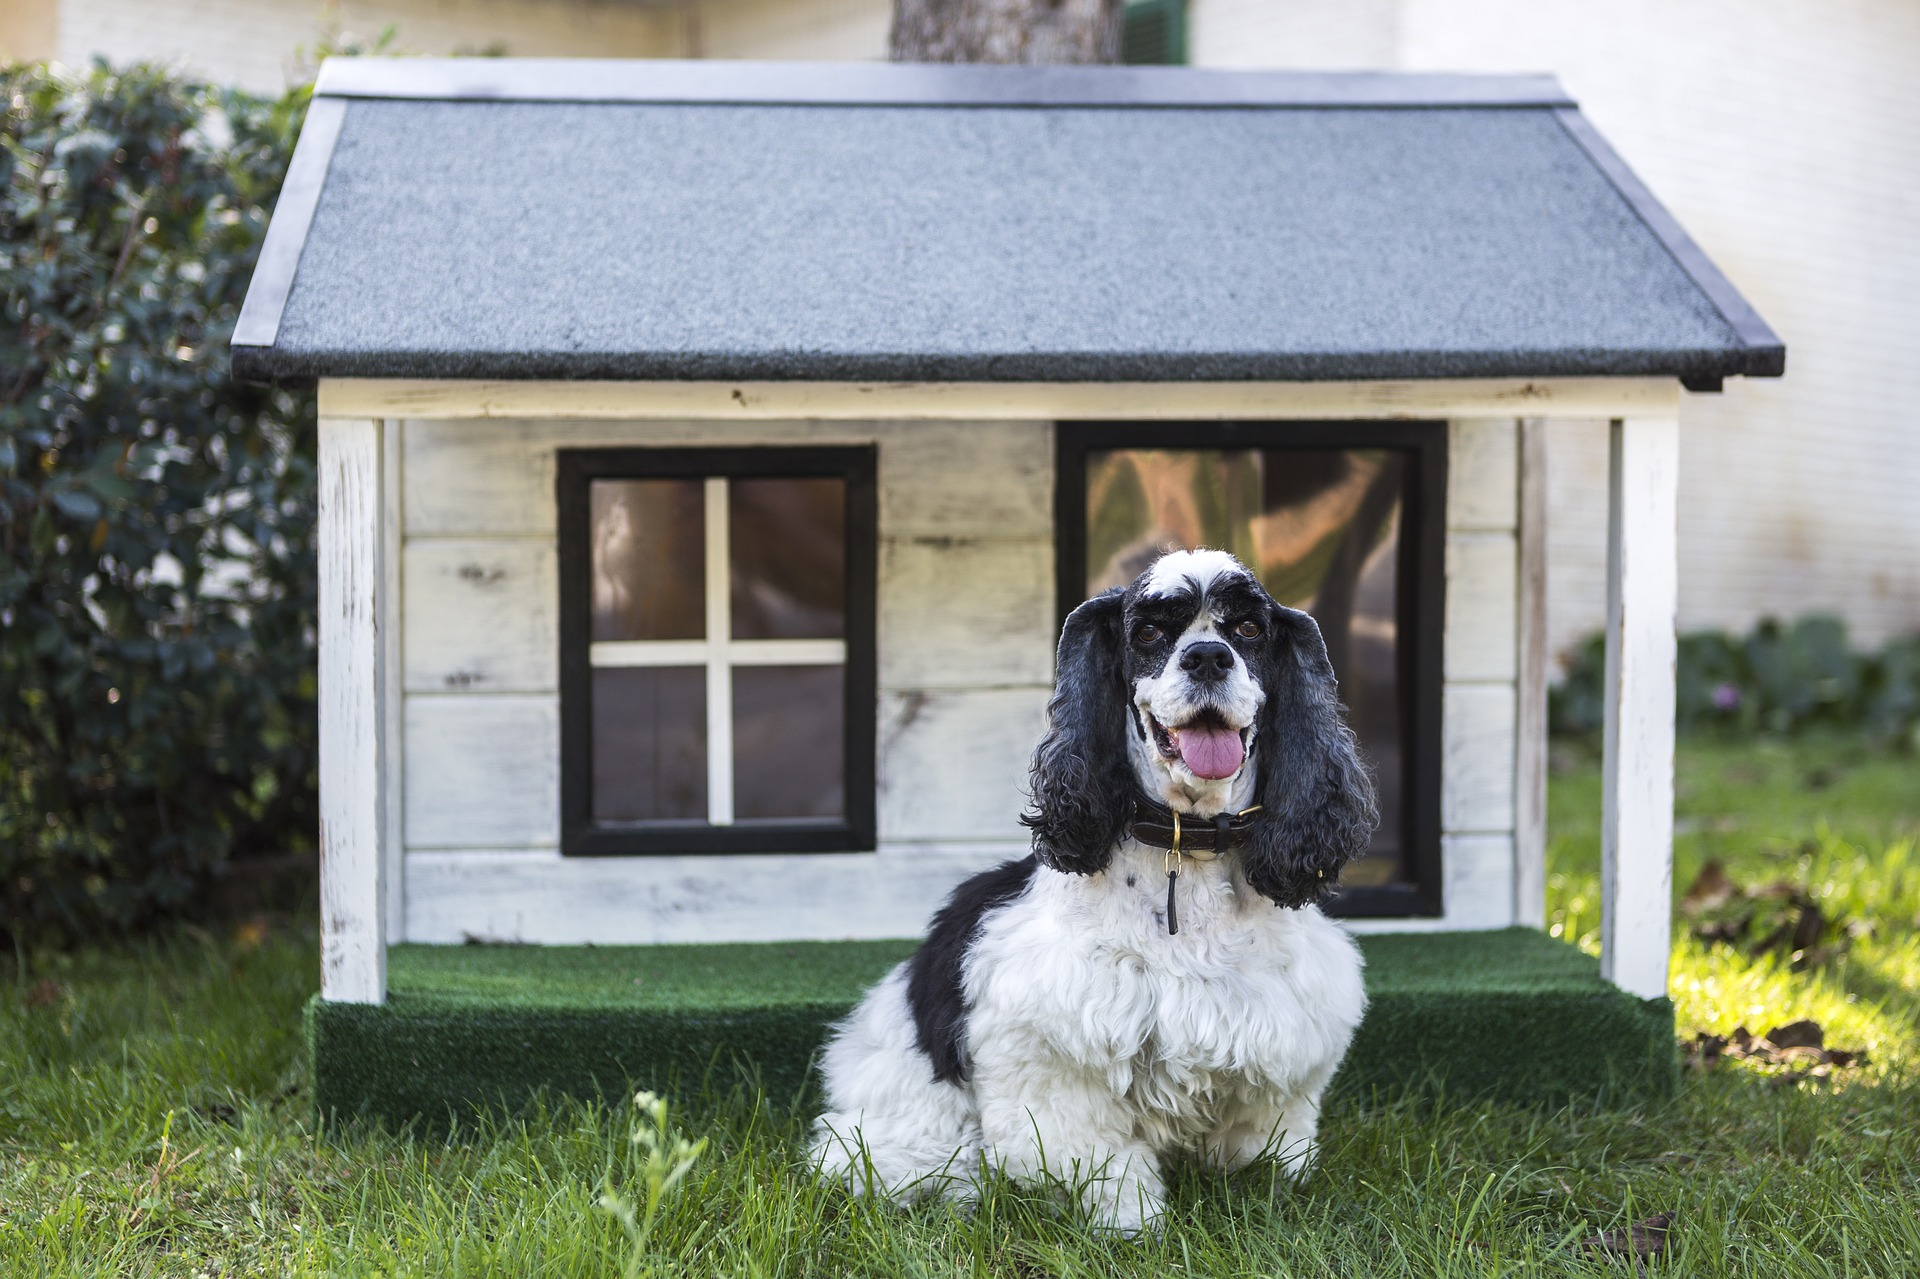 kennels-for-pets-3821849_1920